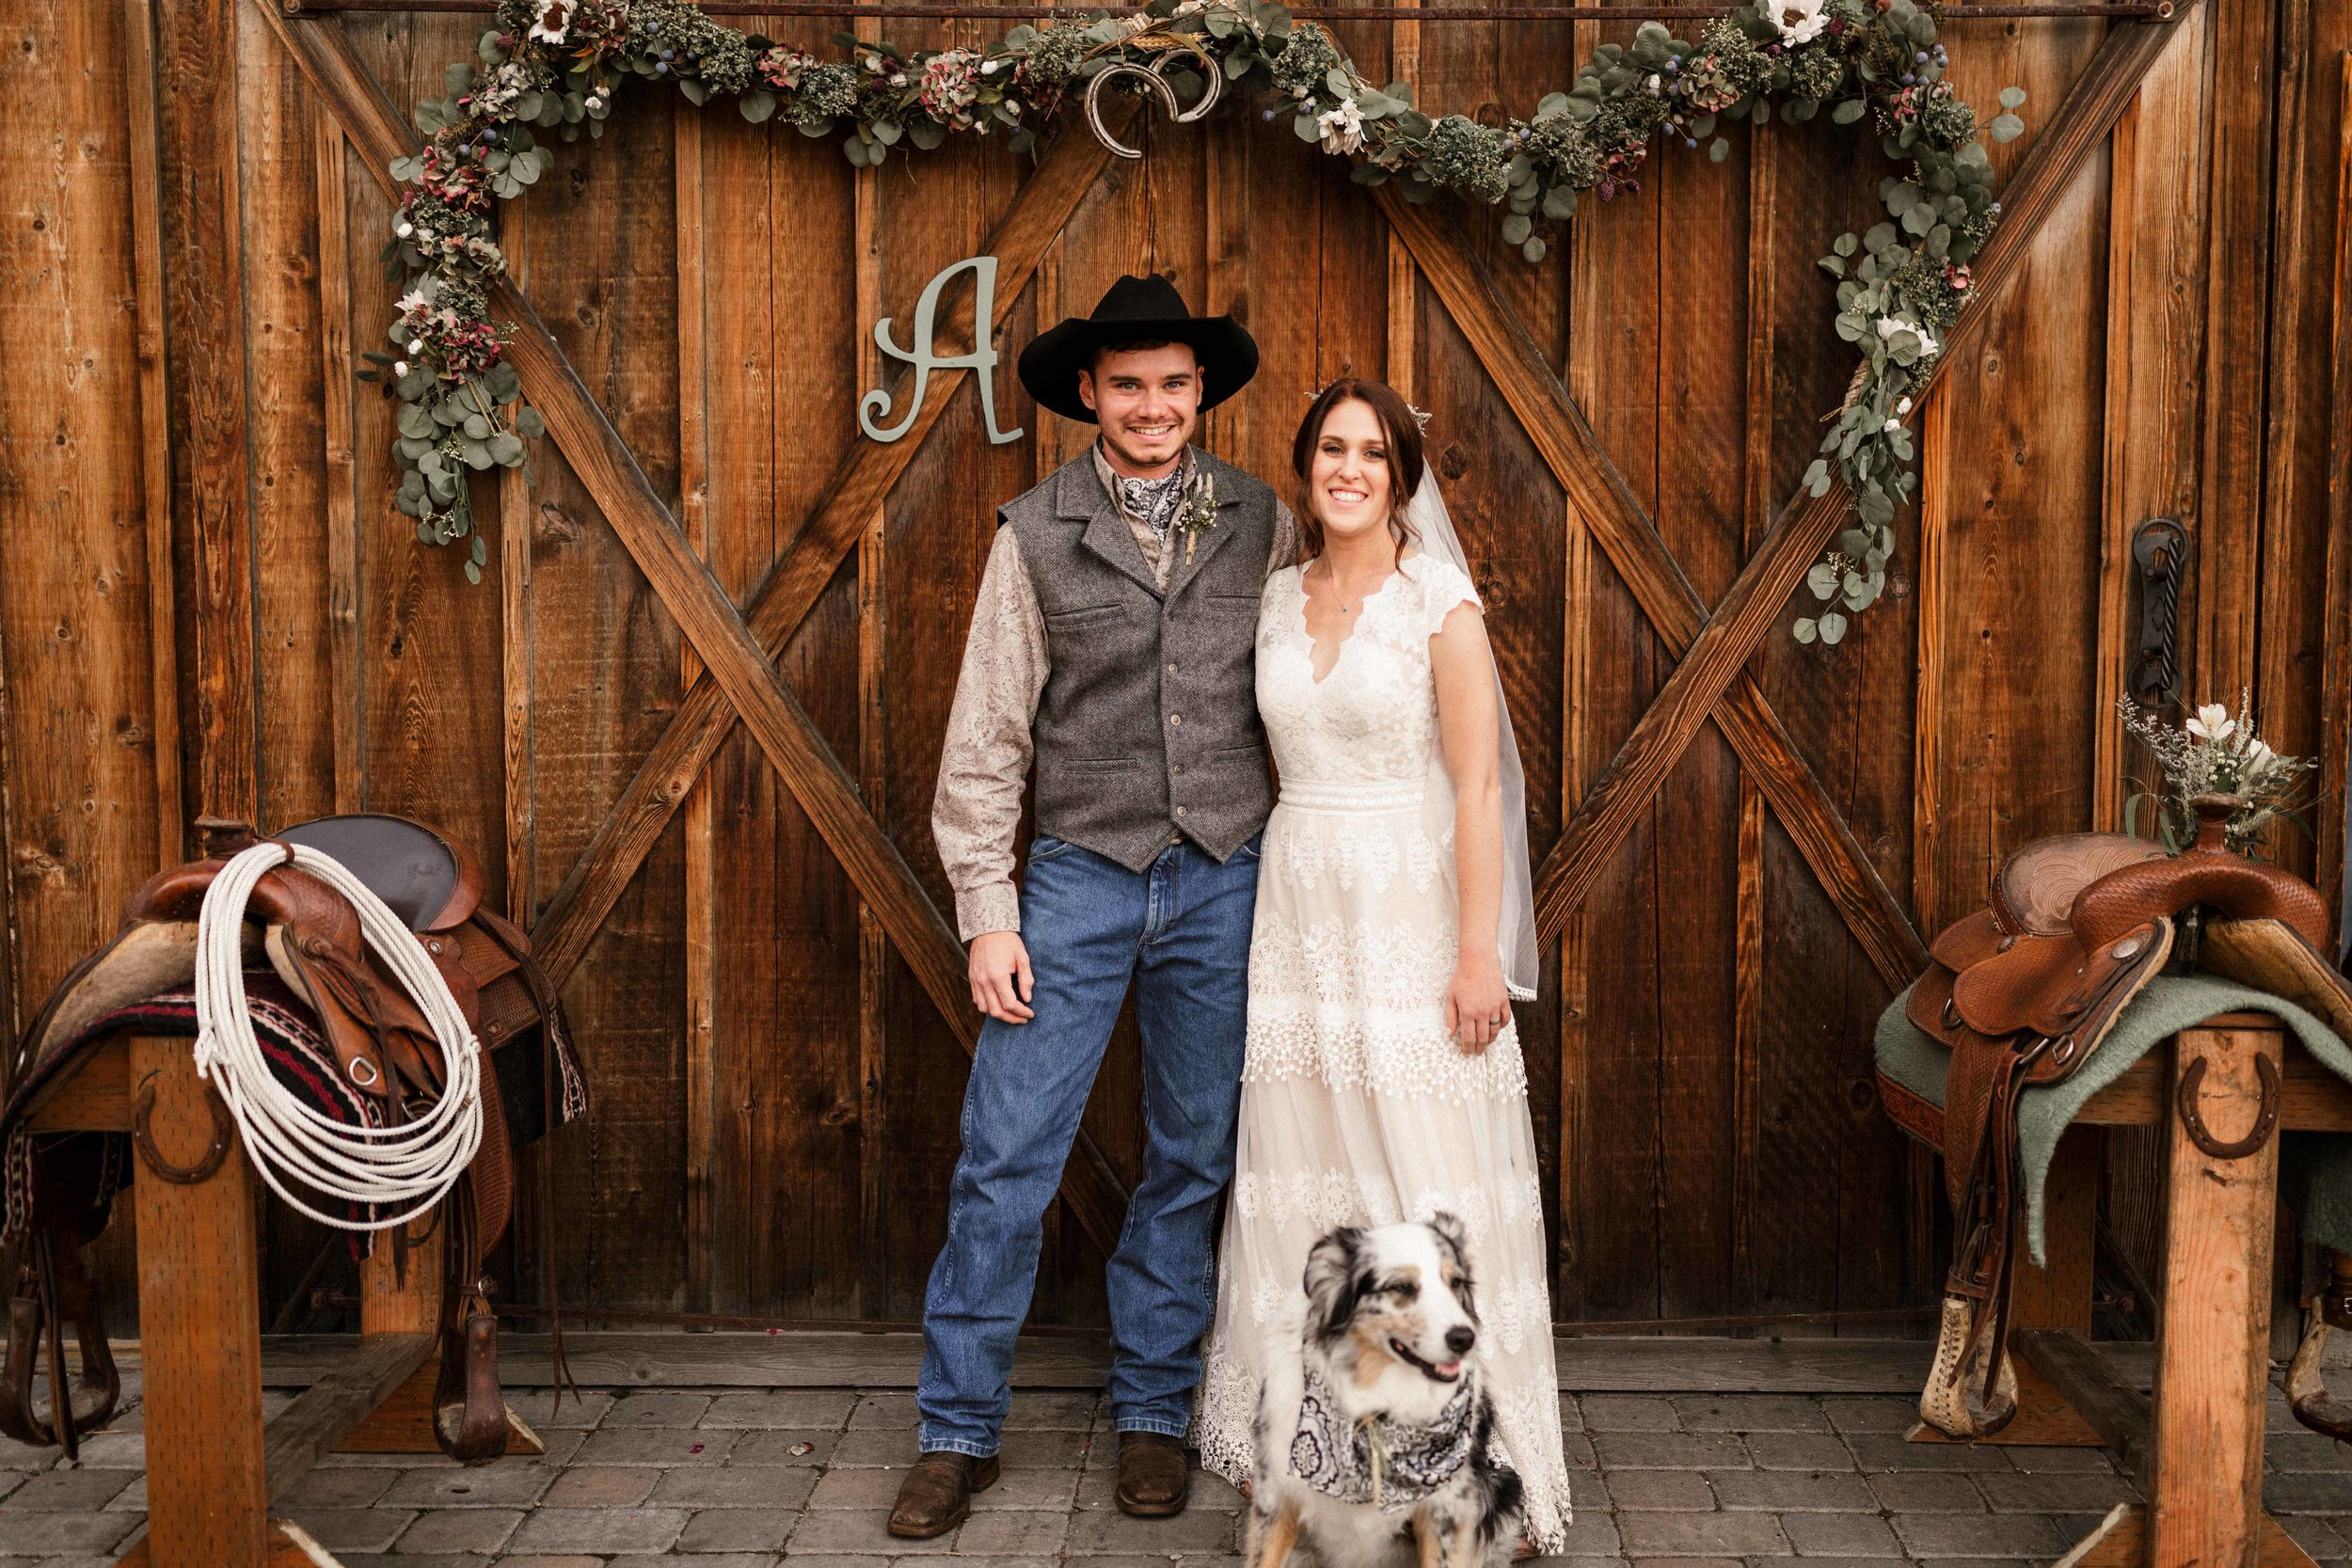 the-cattle-barn-wedding-66.jpg